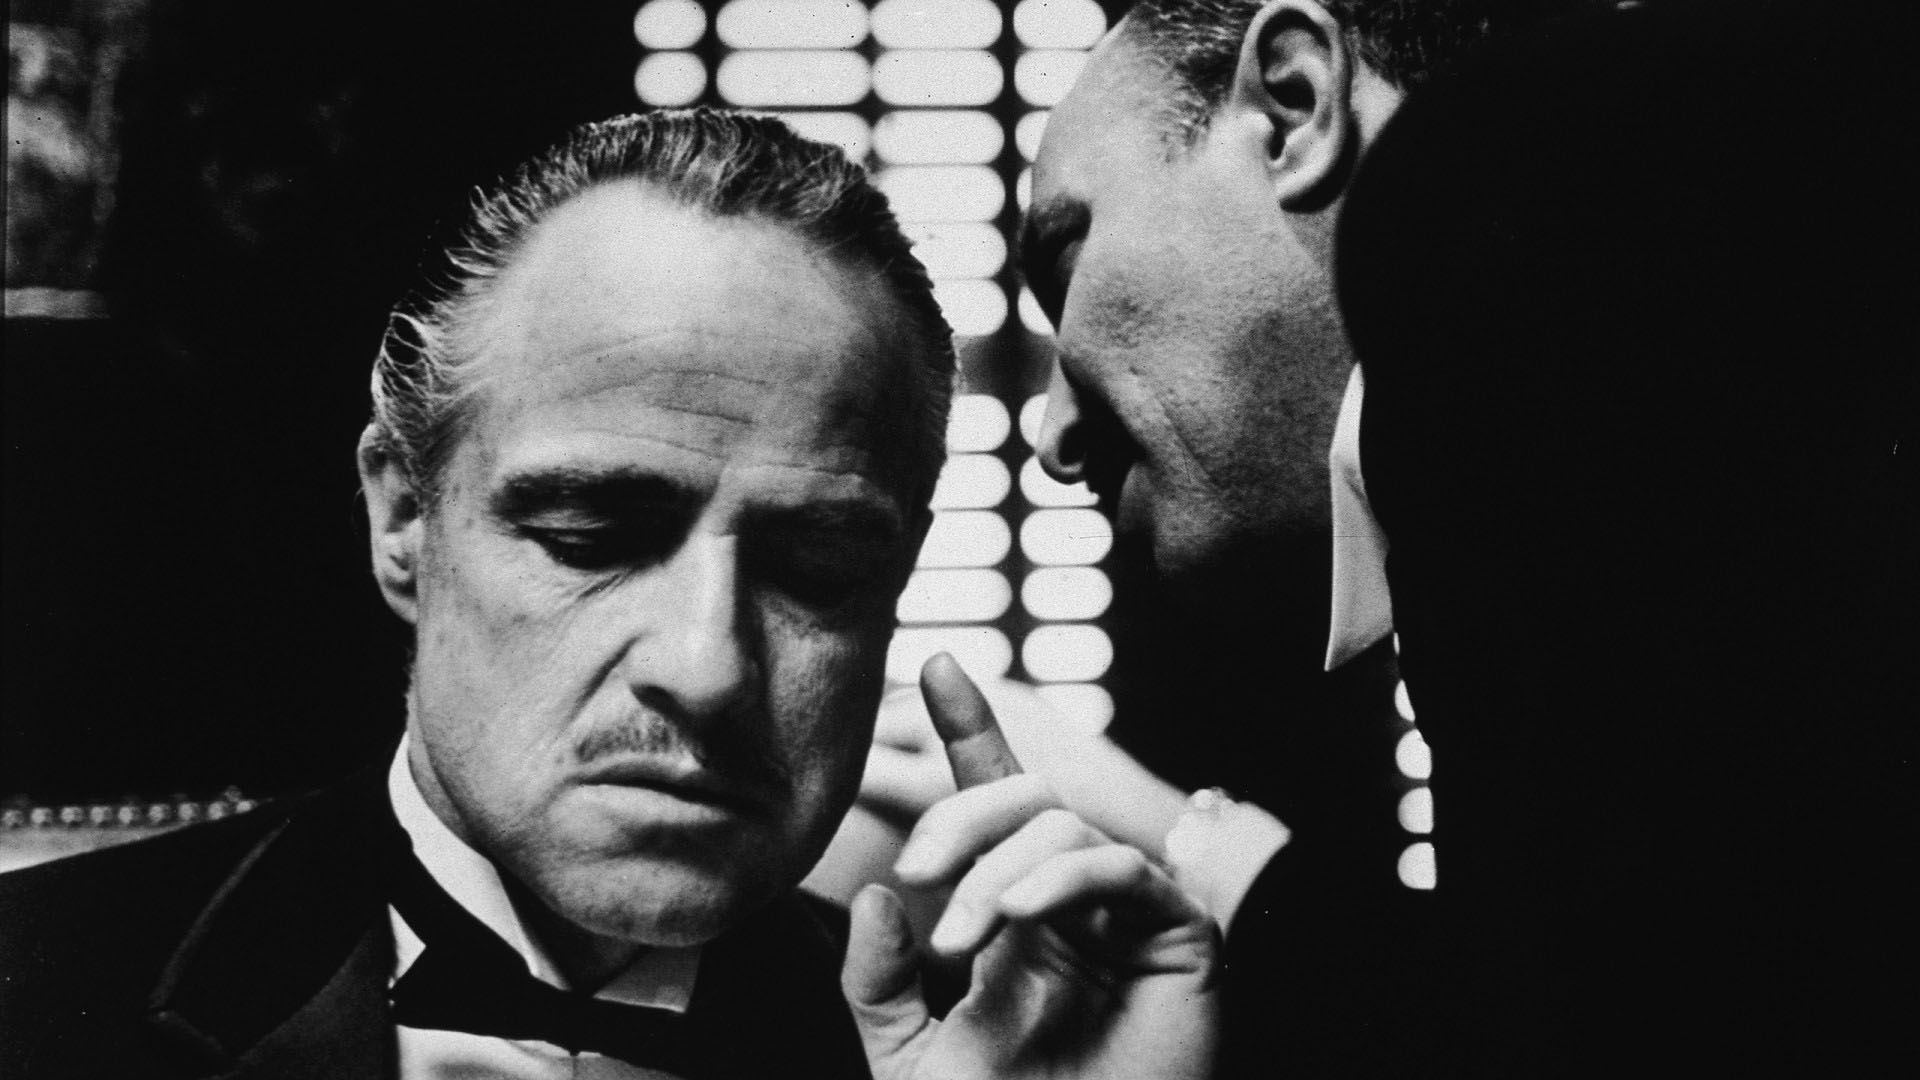 Marlon Brando as Vito Corleone in The Godfather   Epic Wallpapers 1920x1080